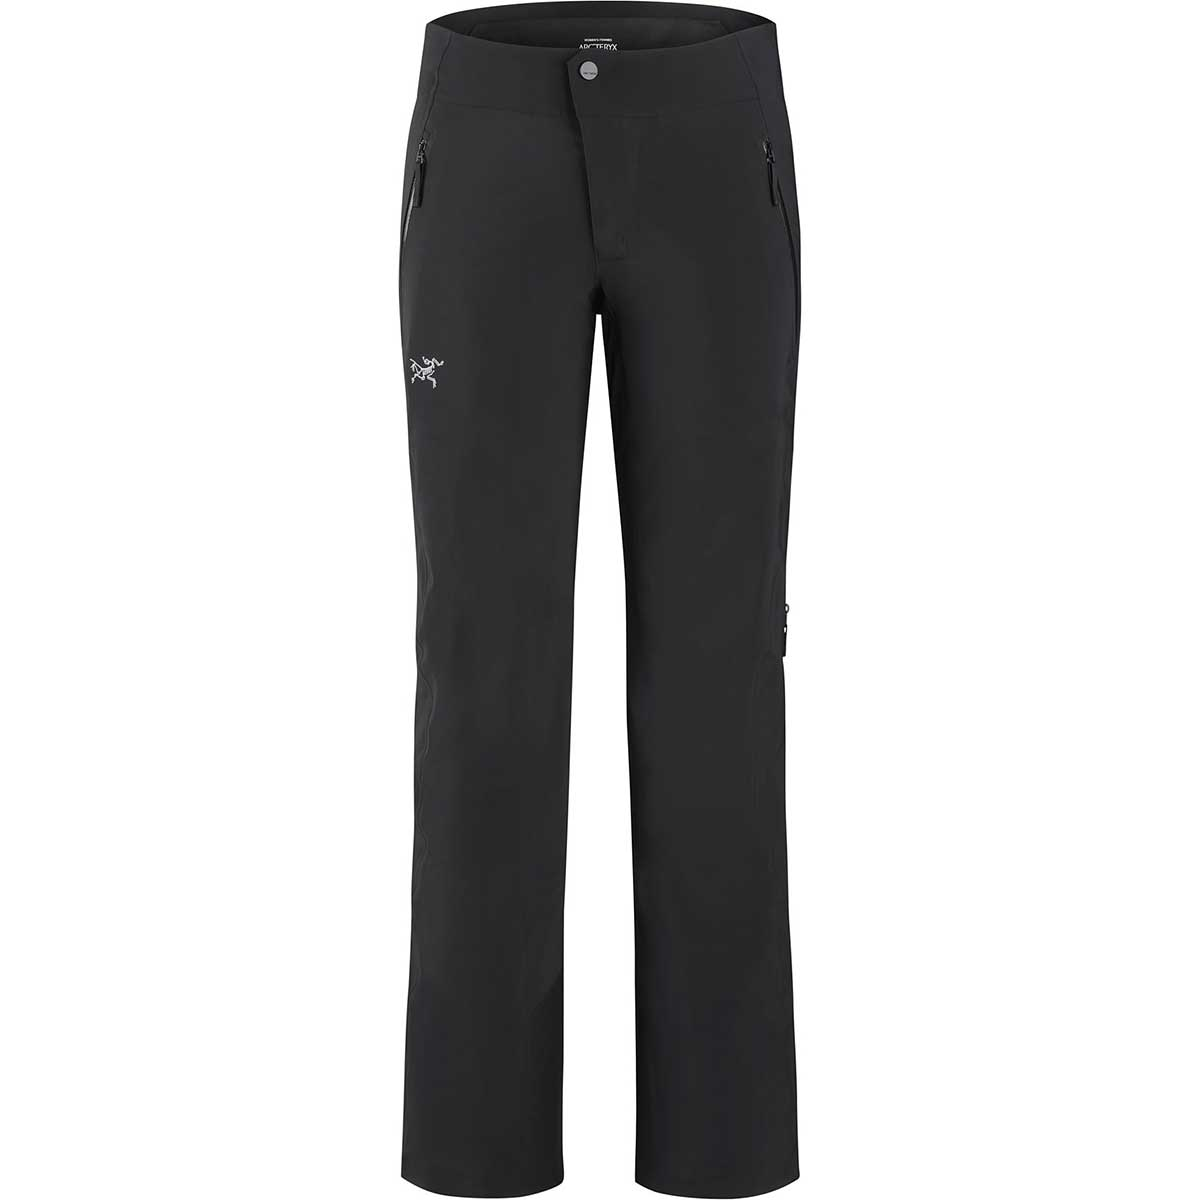 Arcteryx women's Ravenna Pant in Black front view